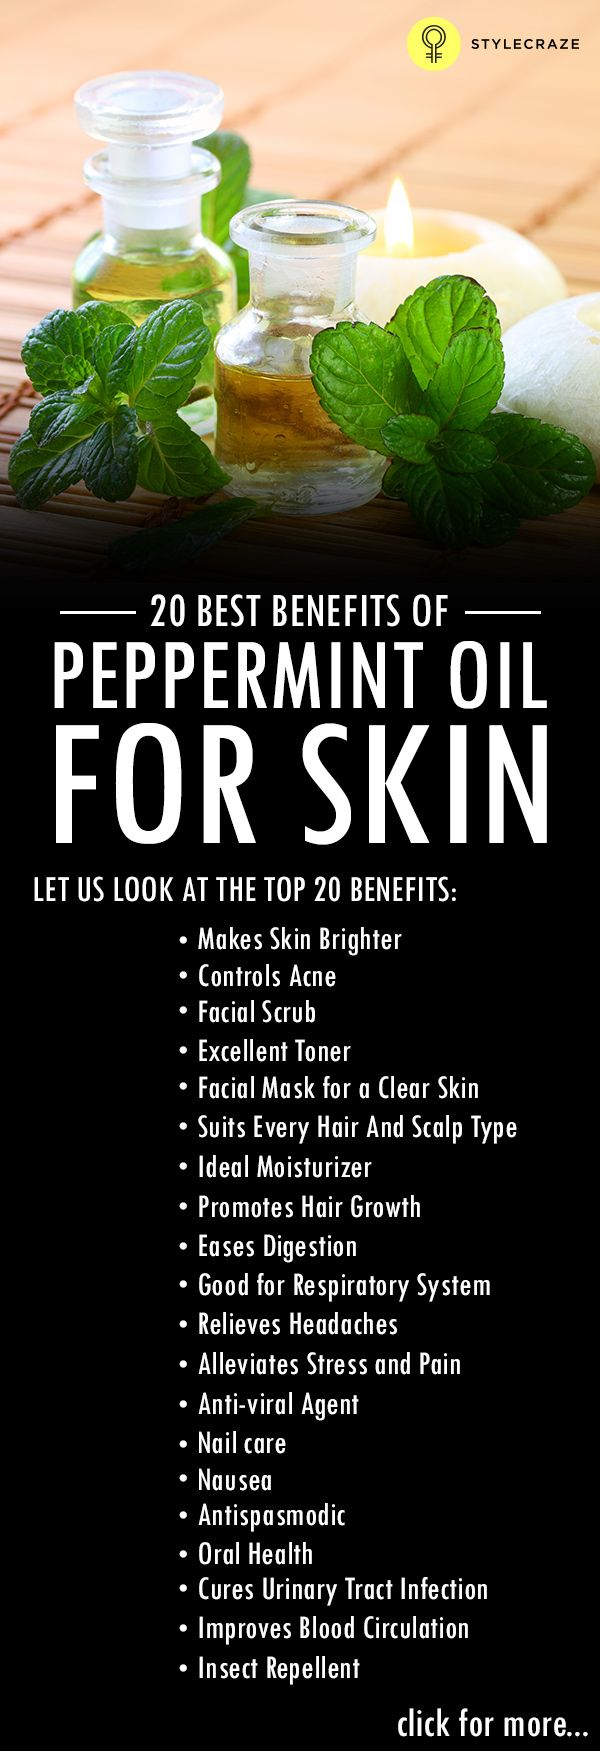 20 Best Benefits Of Peppermint Oil For Skin, Hair, And Health